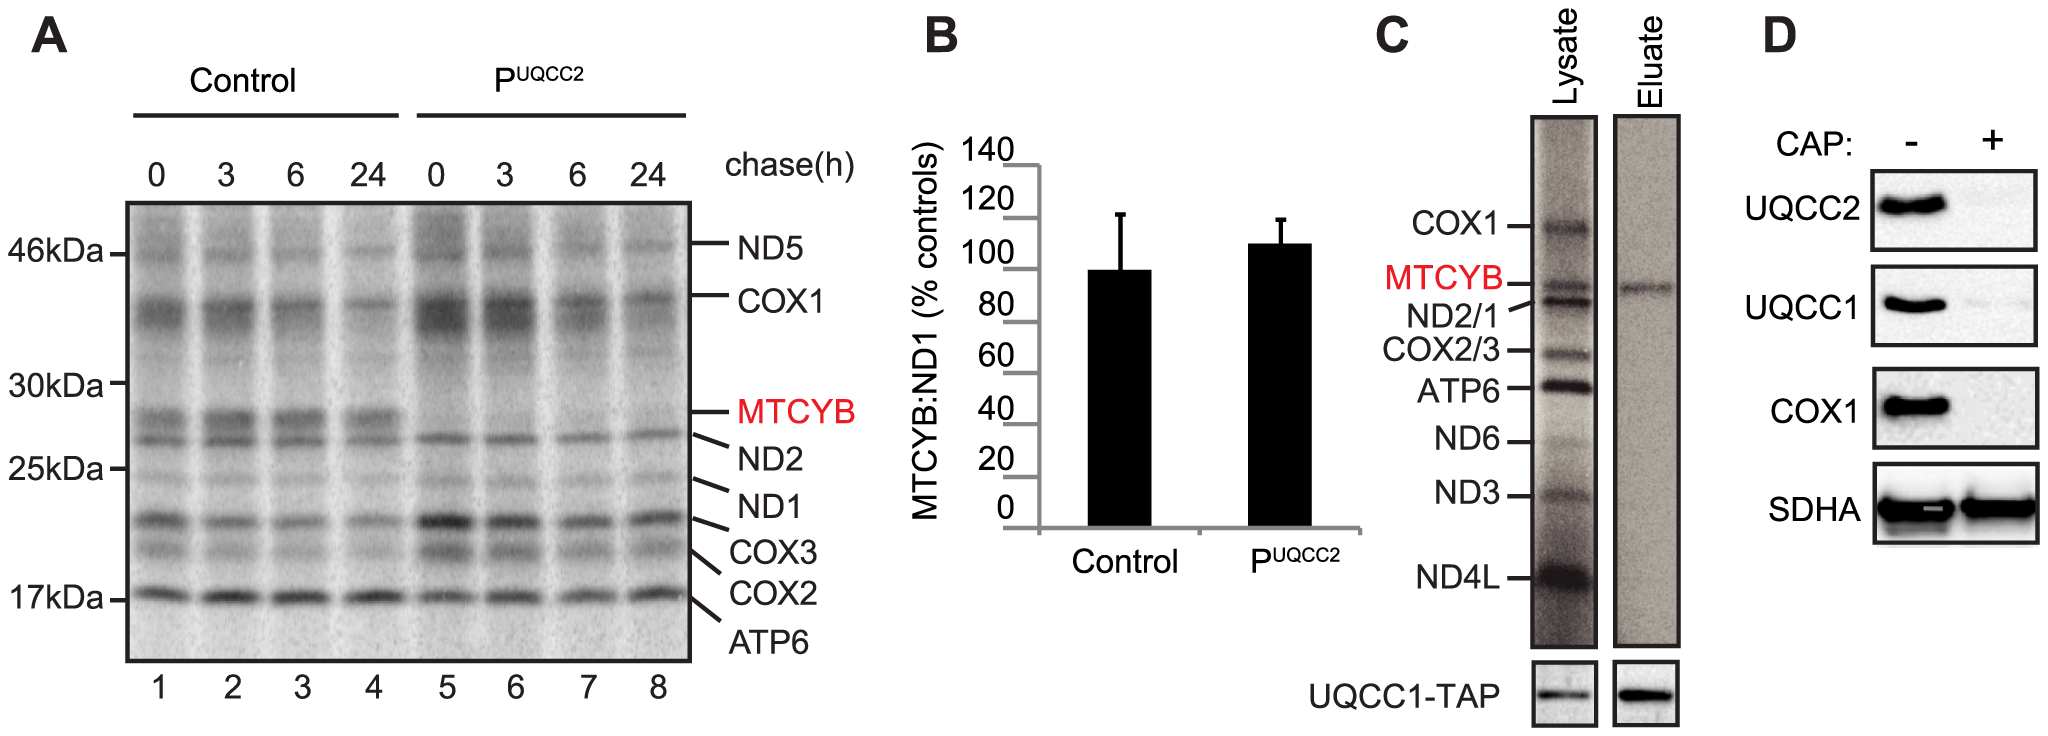 UQCC2 and UQCC1 are involved in cytochrome <i>b</i> translation and/or stability.